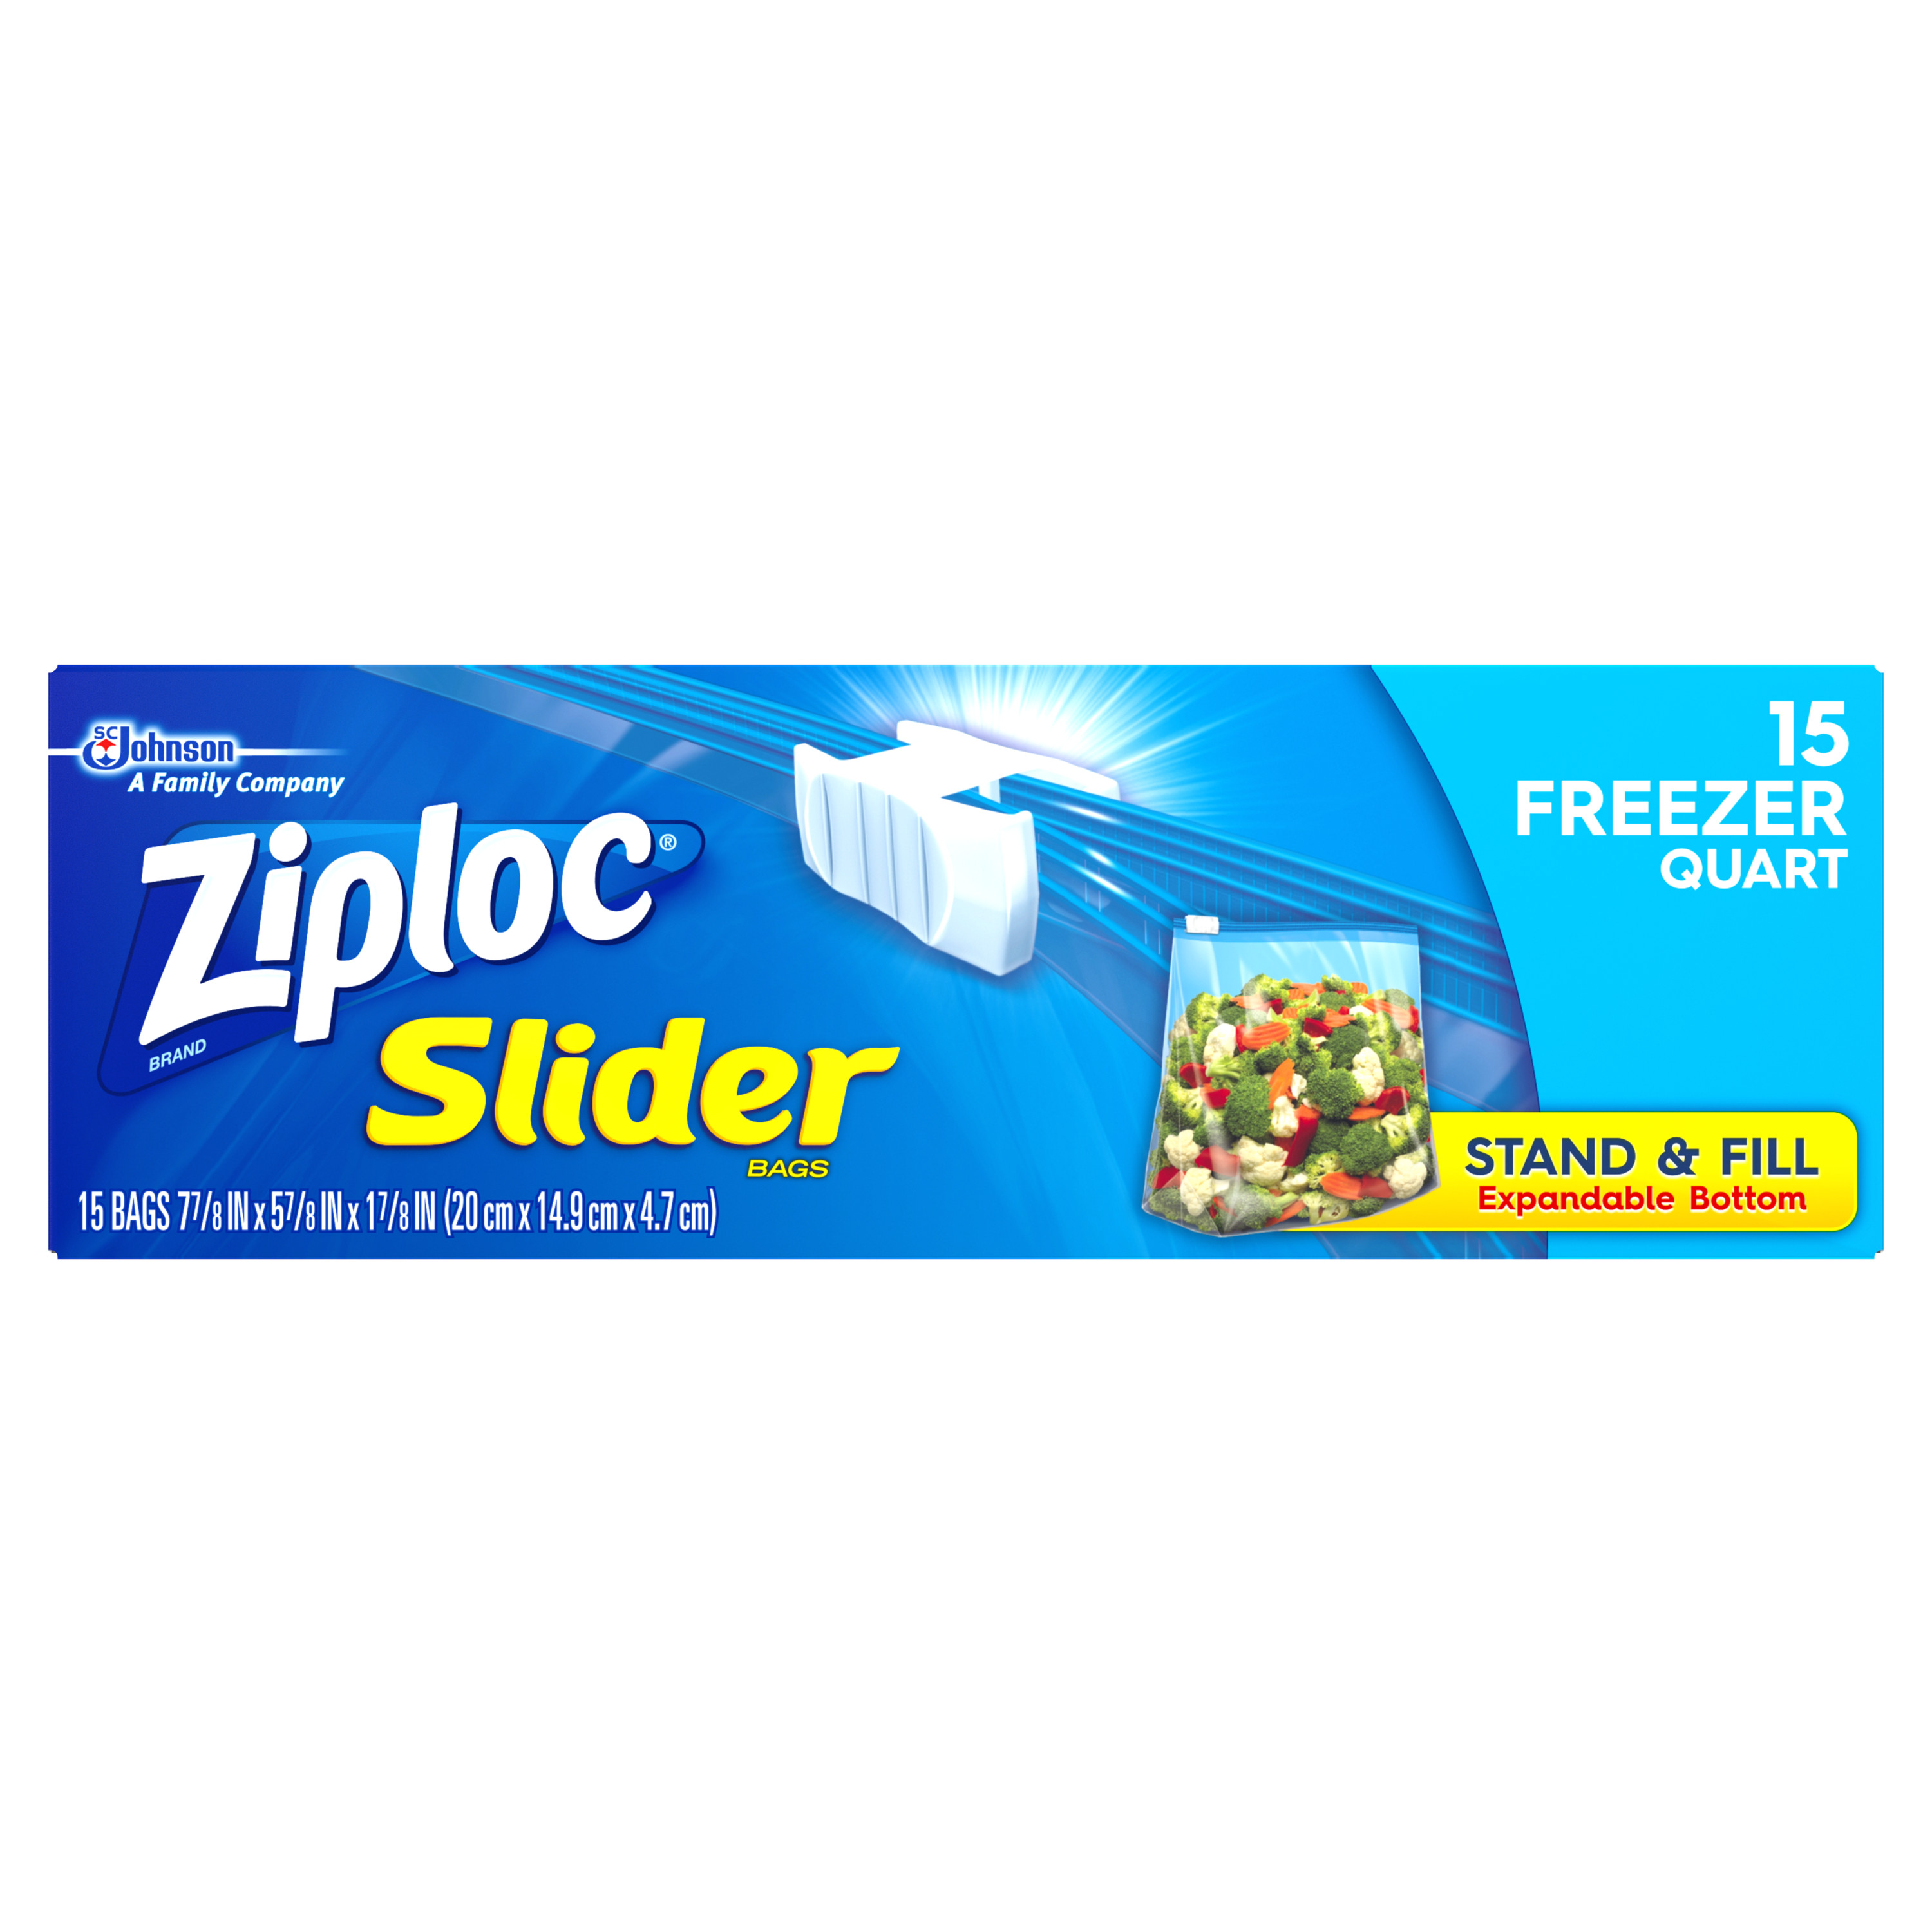 Ziploc Slider Freezer Quart 15 Count